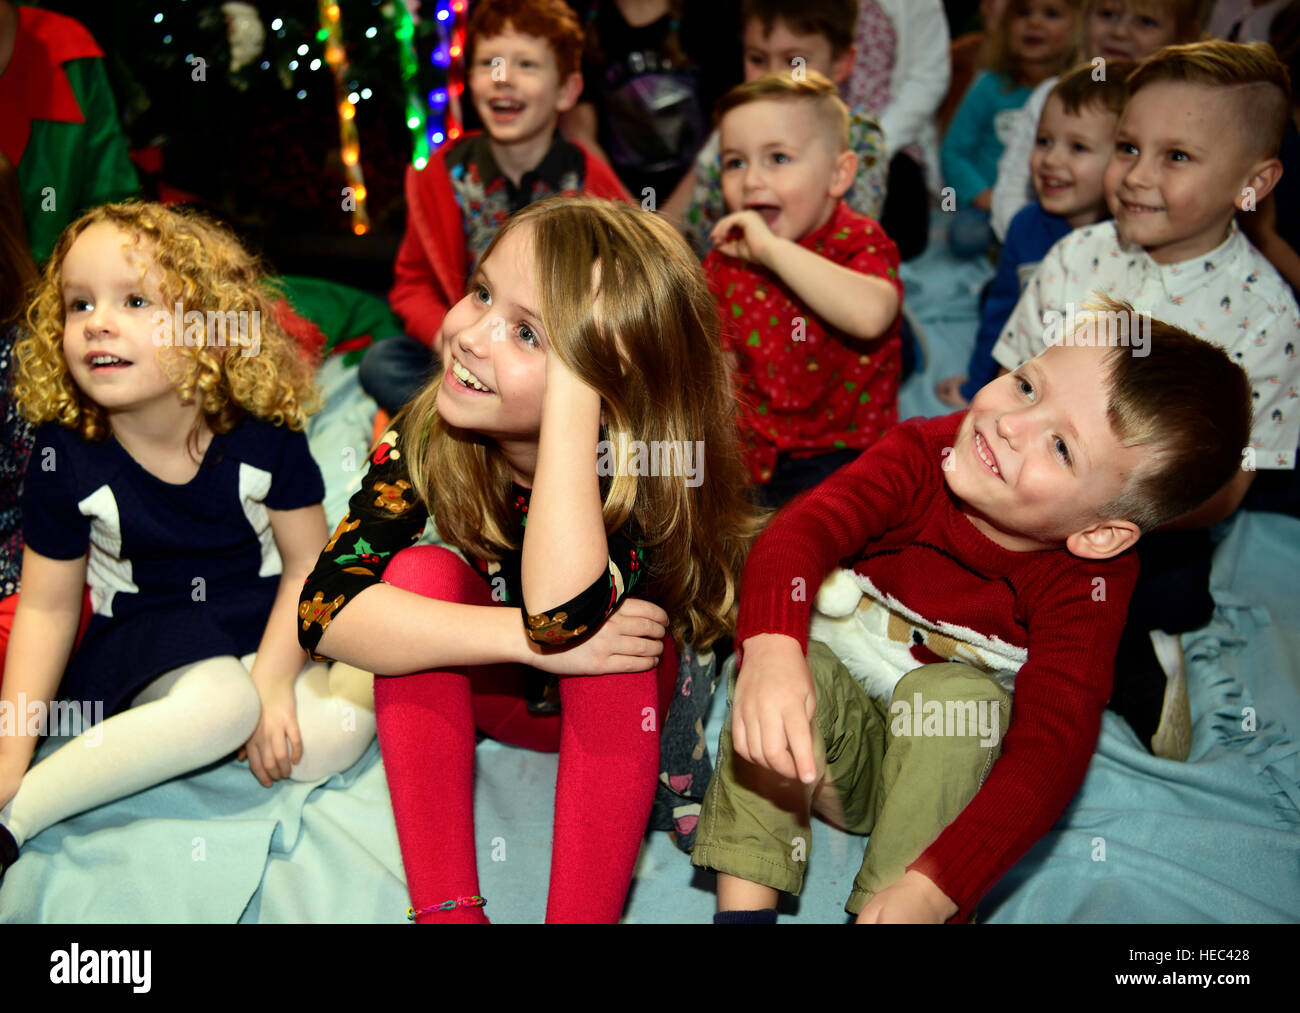 A Christmas Party.Kids At A Christmas Party Enjoying The Children S